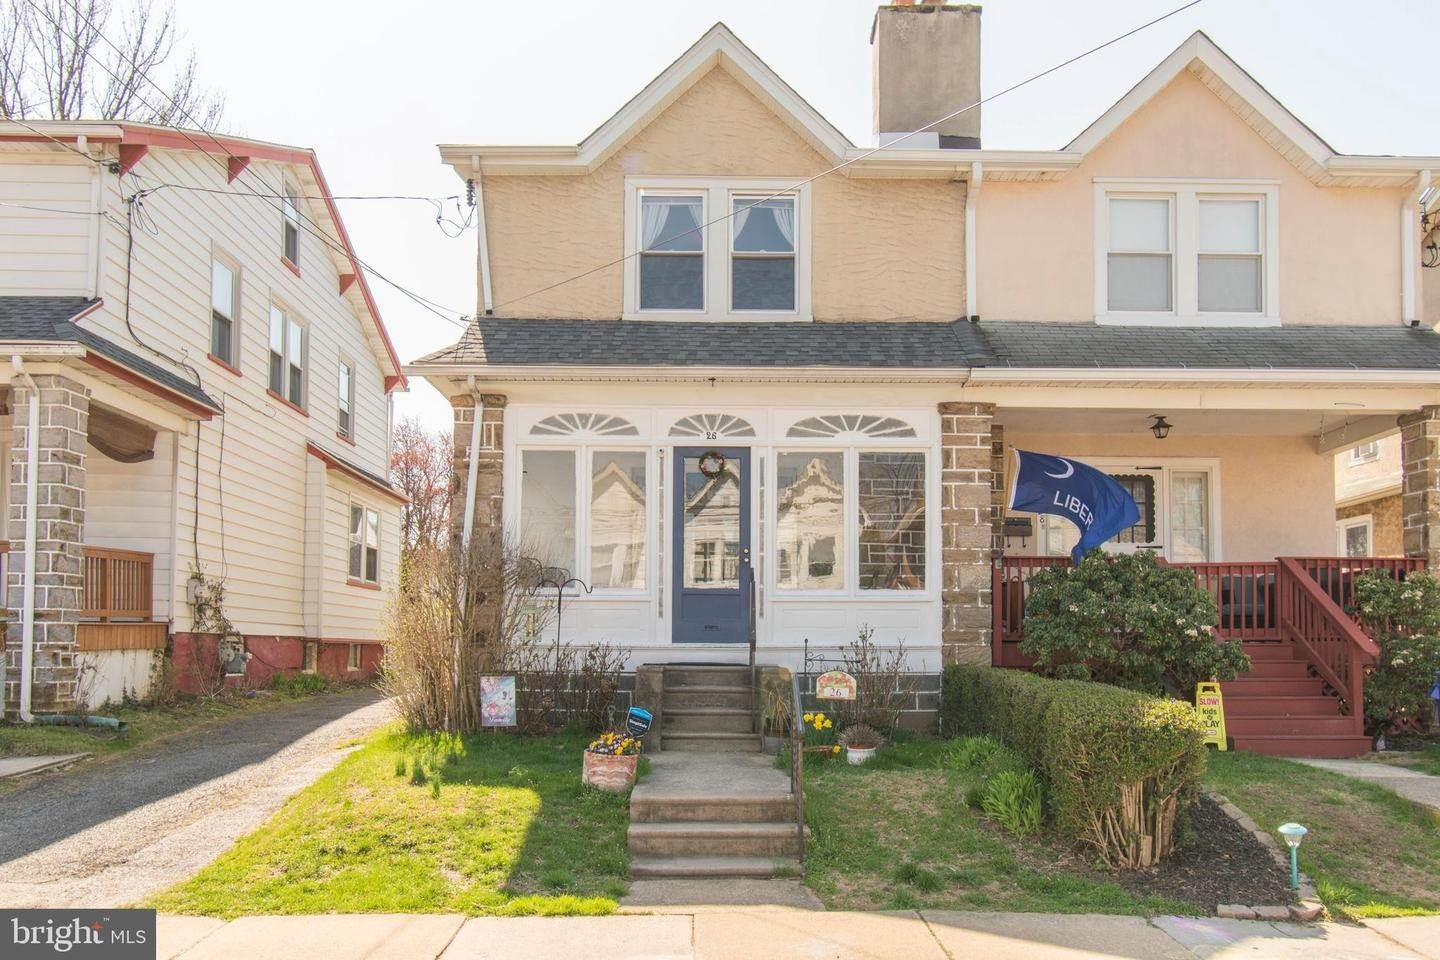 Semi-Detached House for Sale at 26 WAVERLY Road Havertown, Pennsylvania 19083 United States